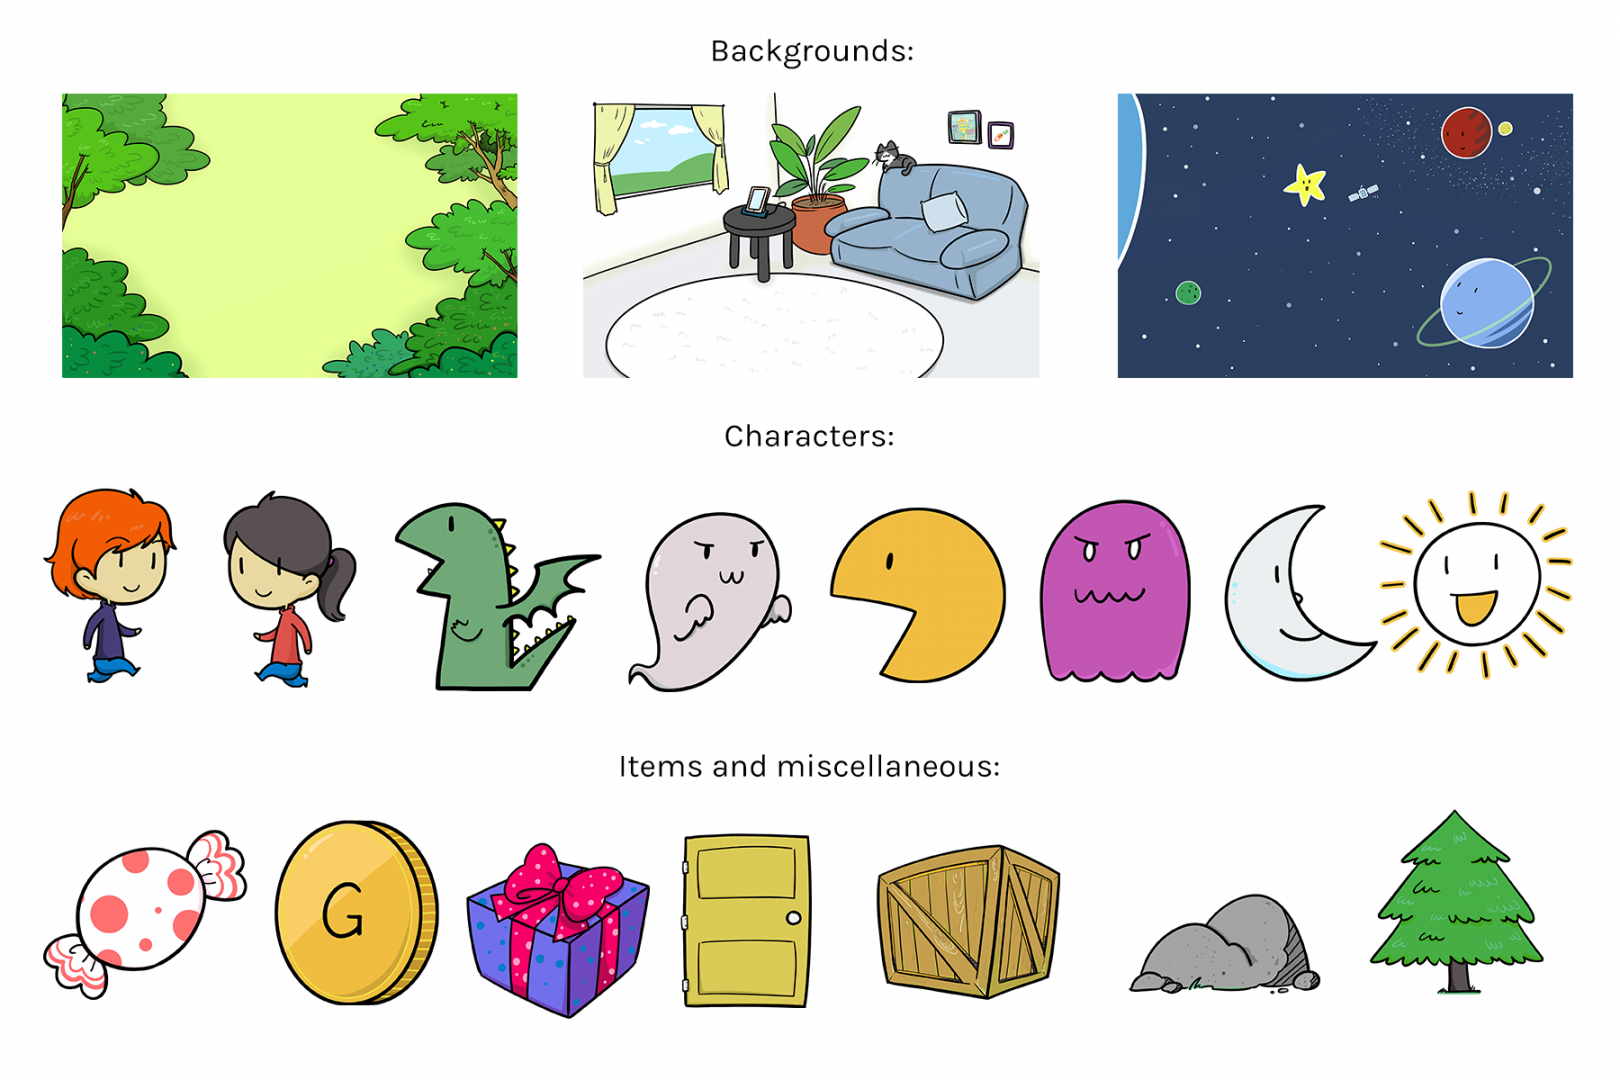 Preview of the comics style asset pack contents. Three backgrounds (forest, living room and space), 8 characters (two humans, dragon, ghost, pac-man, ghost, moon and sun) and seven miscellaneous items (candy, coin, gift, door, crate rock and tree).